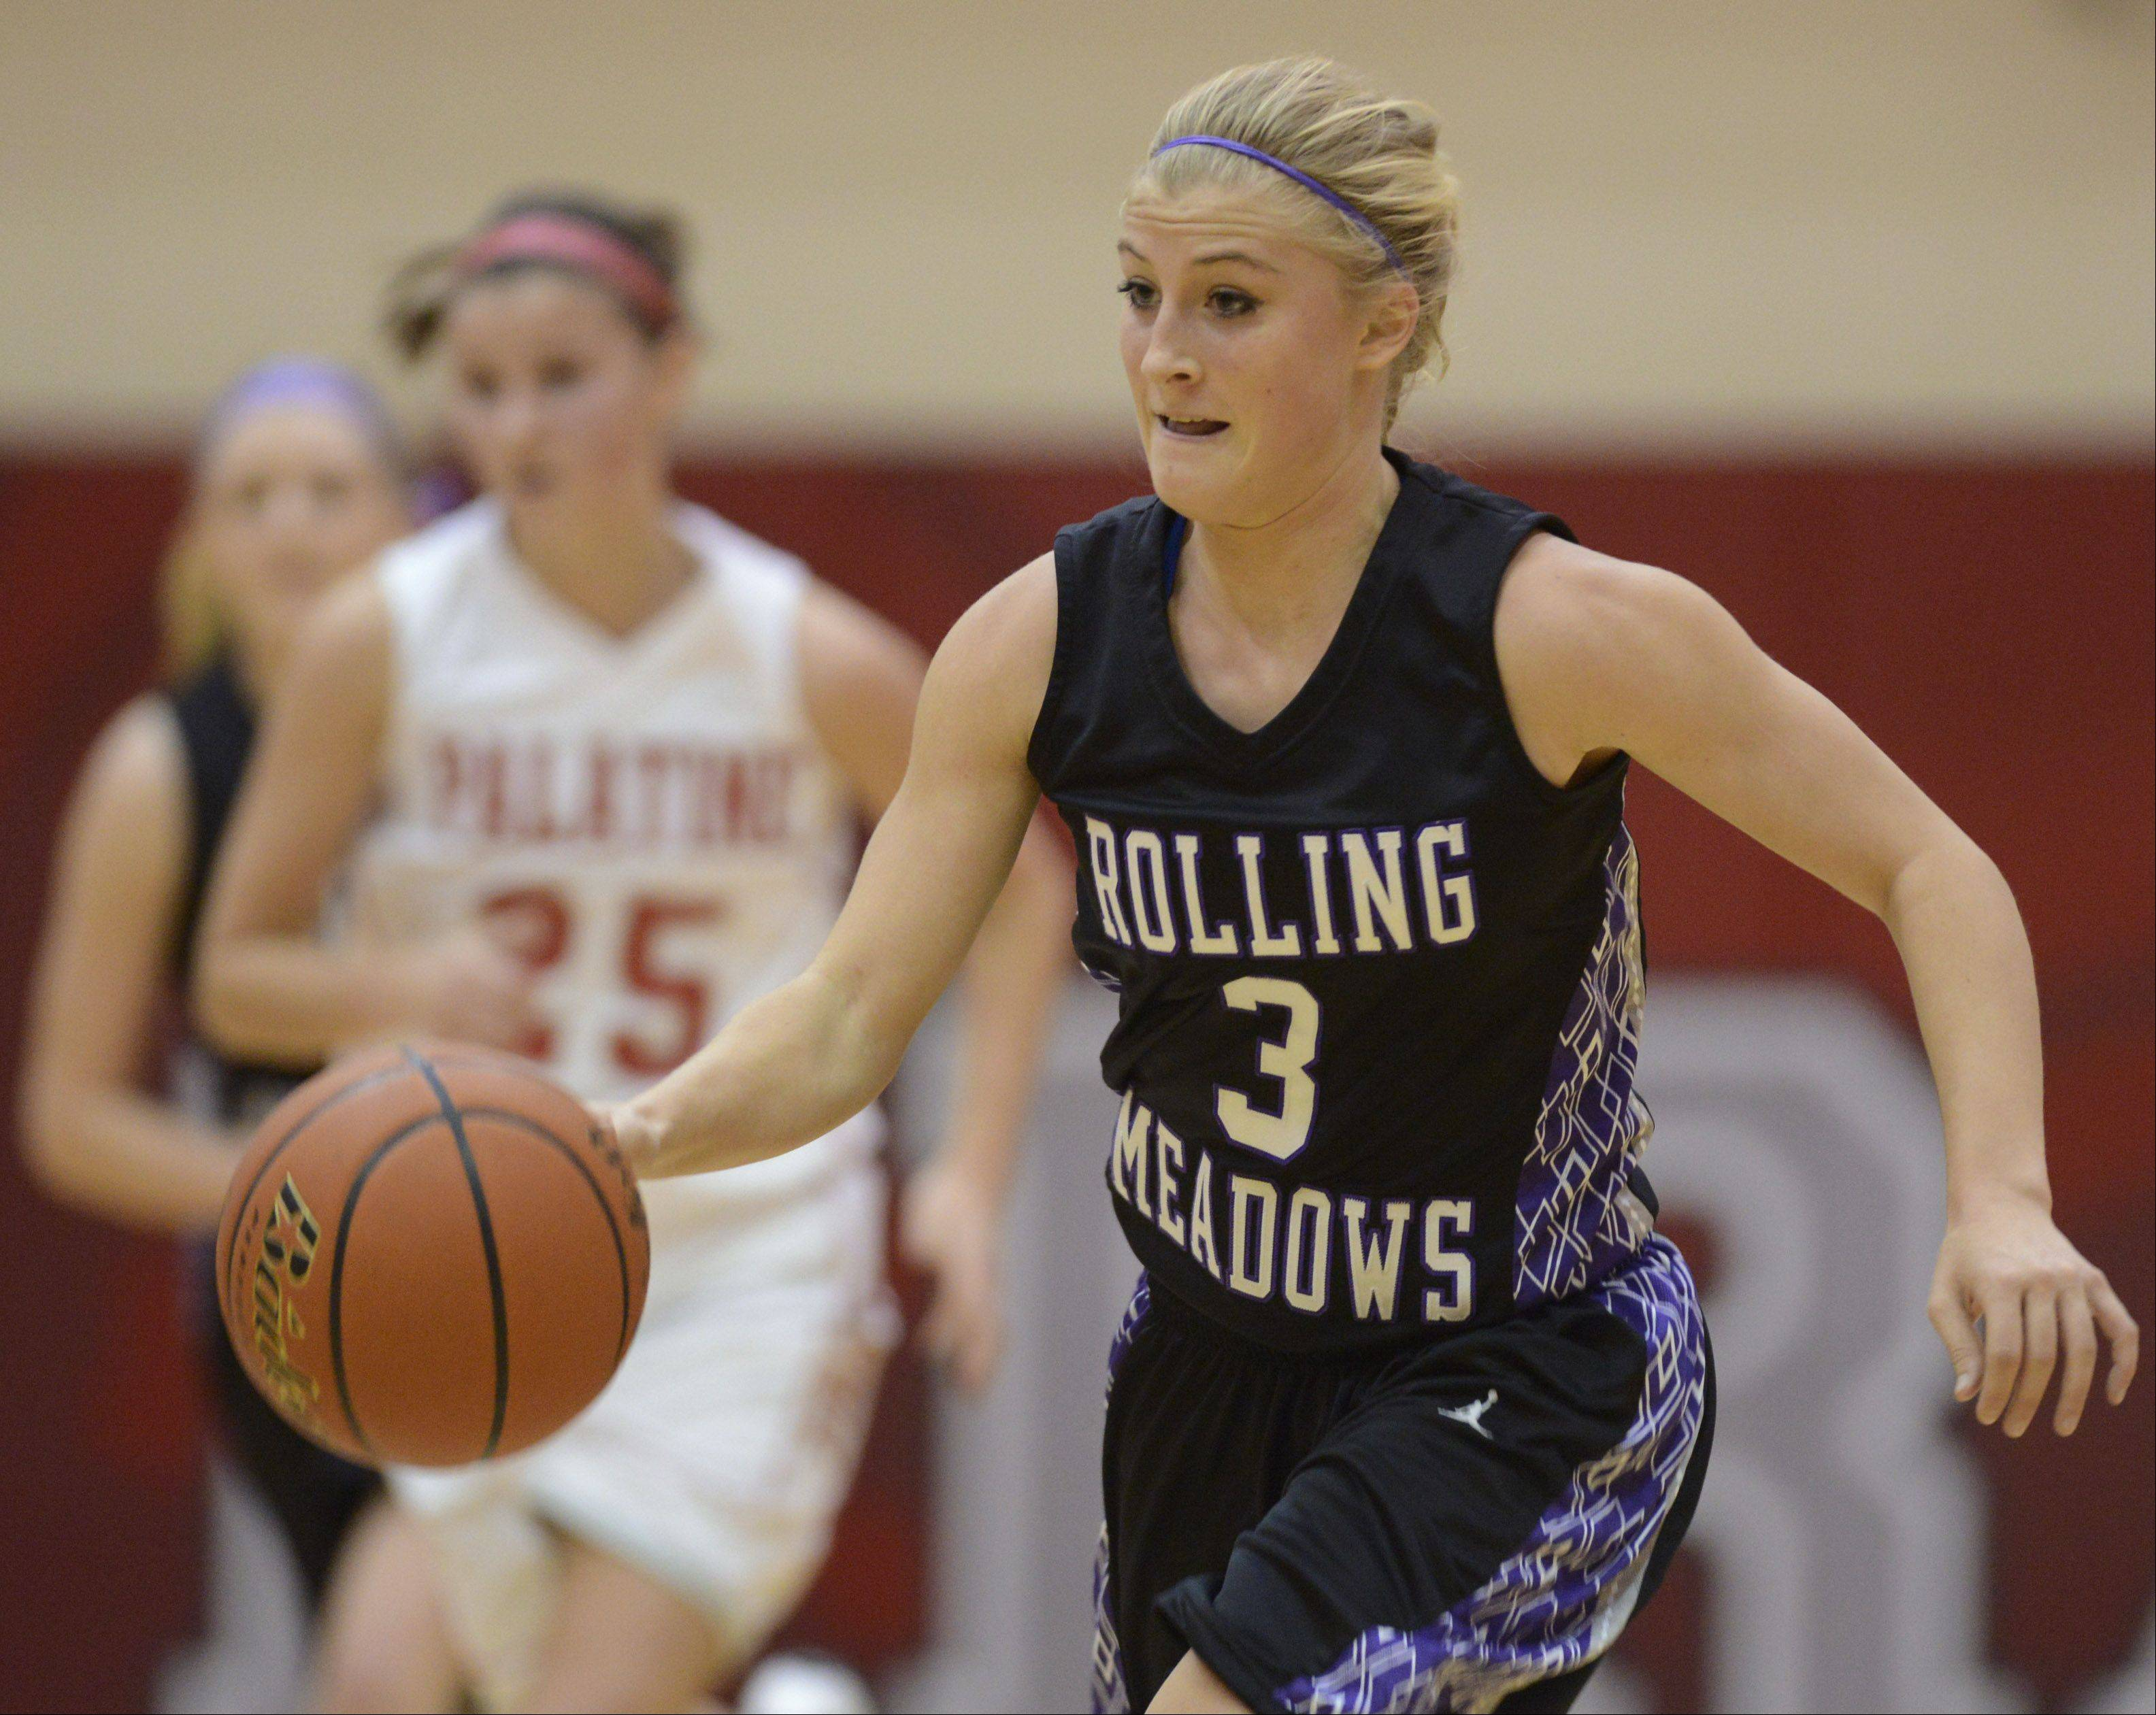 Images: Palatine vs. Rolling Meadows, girls basketball